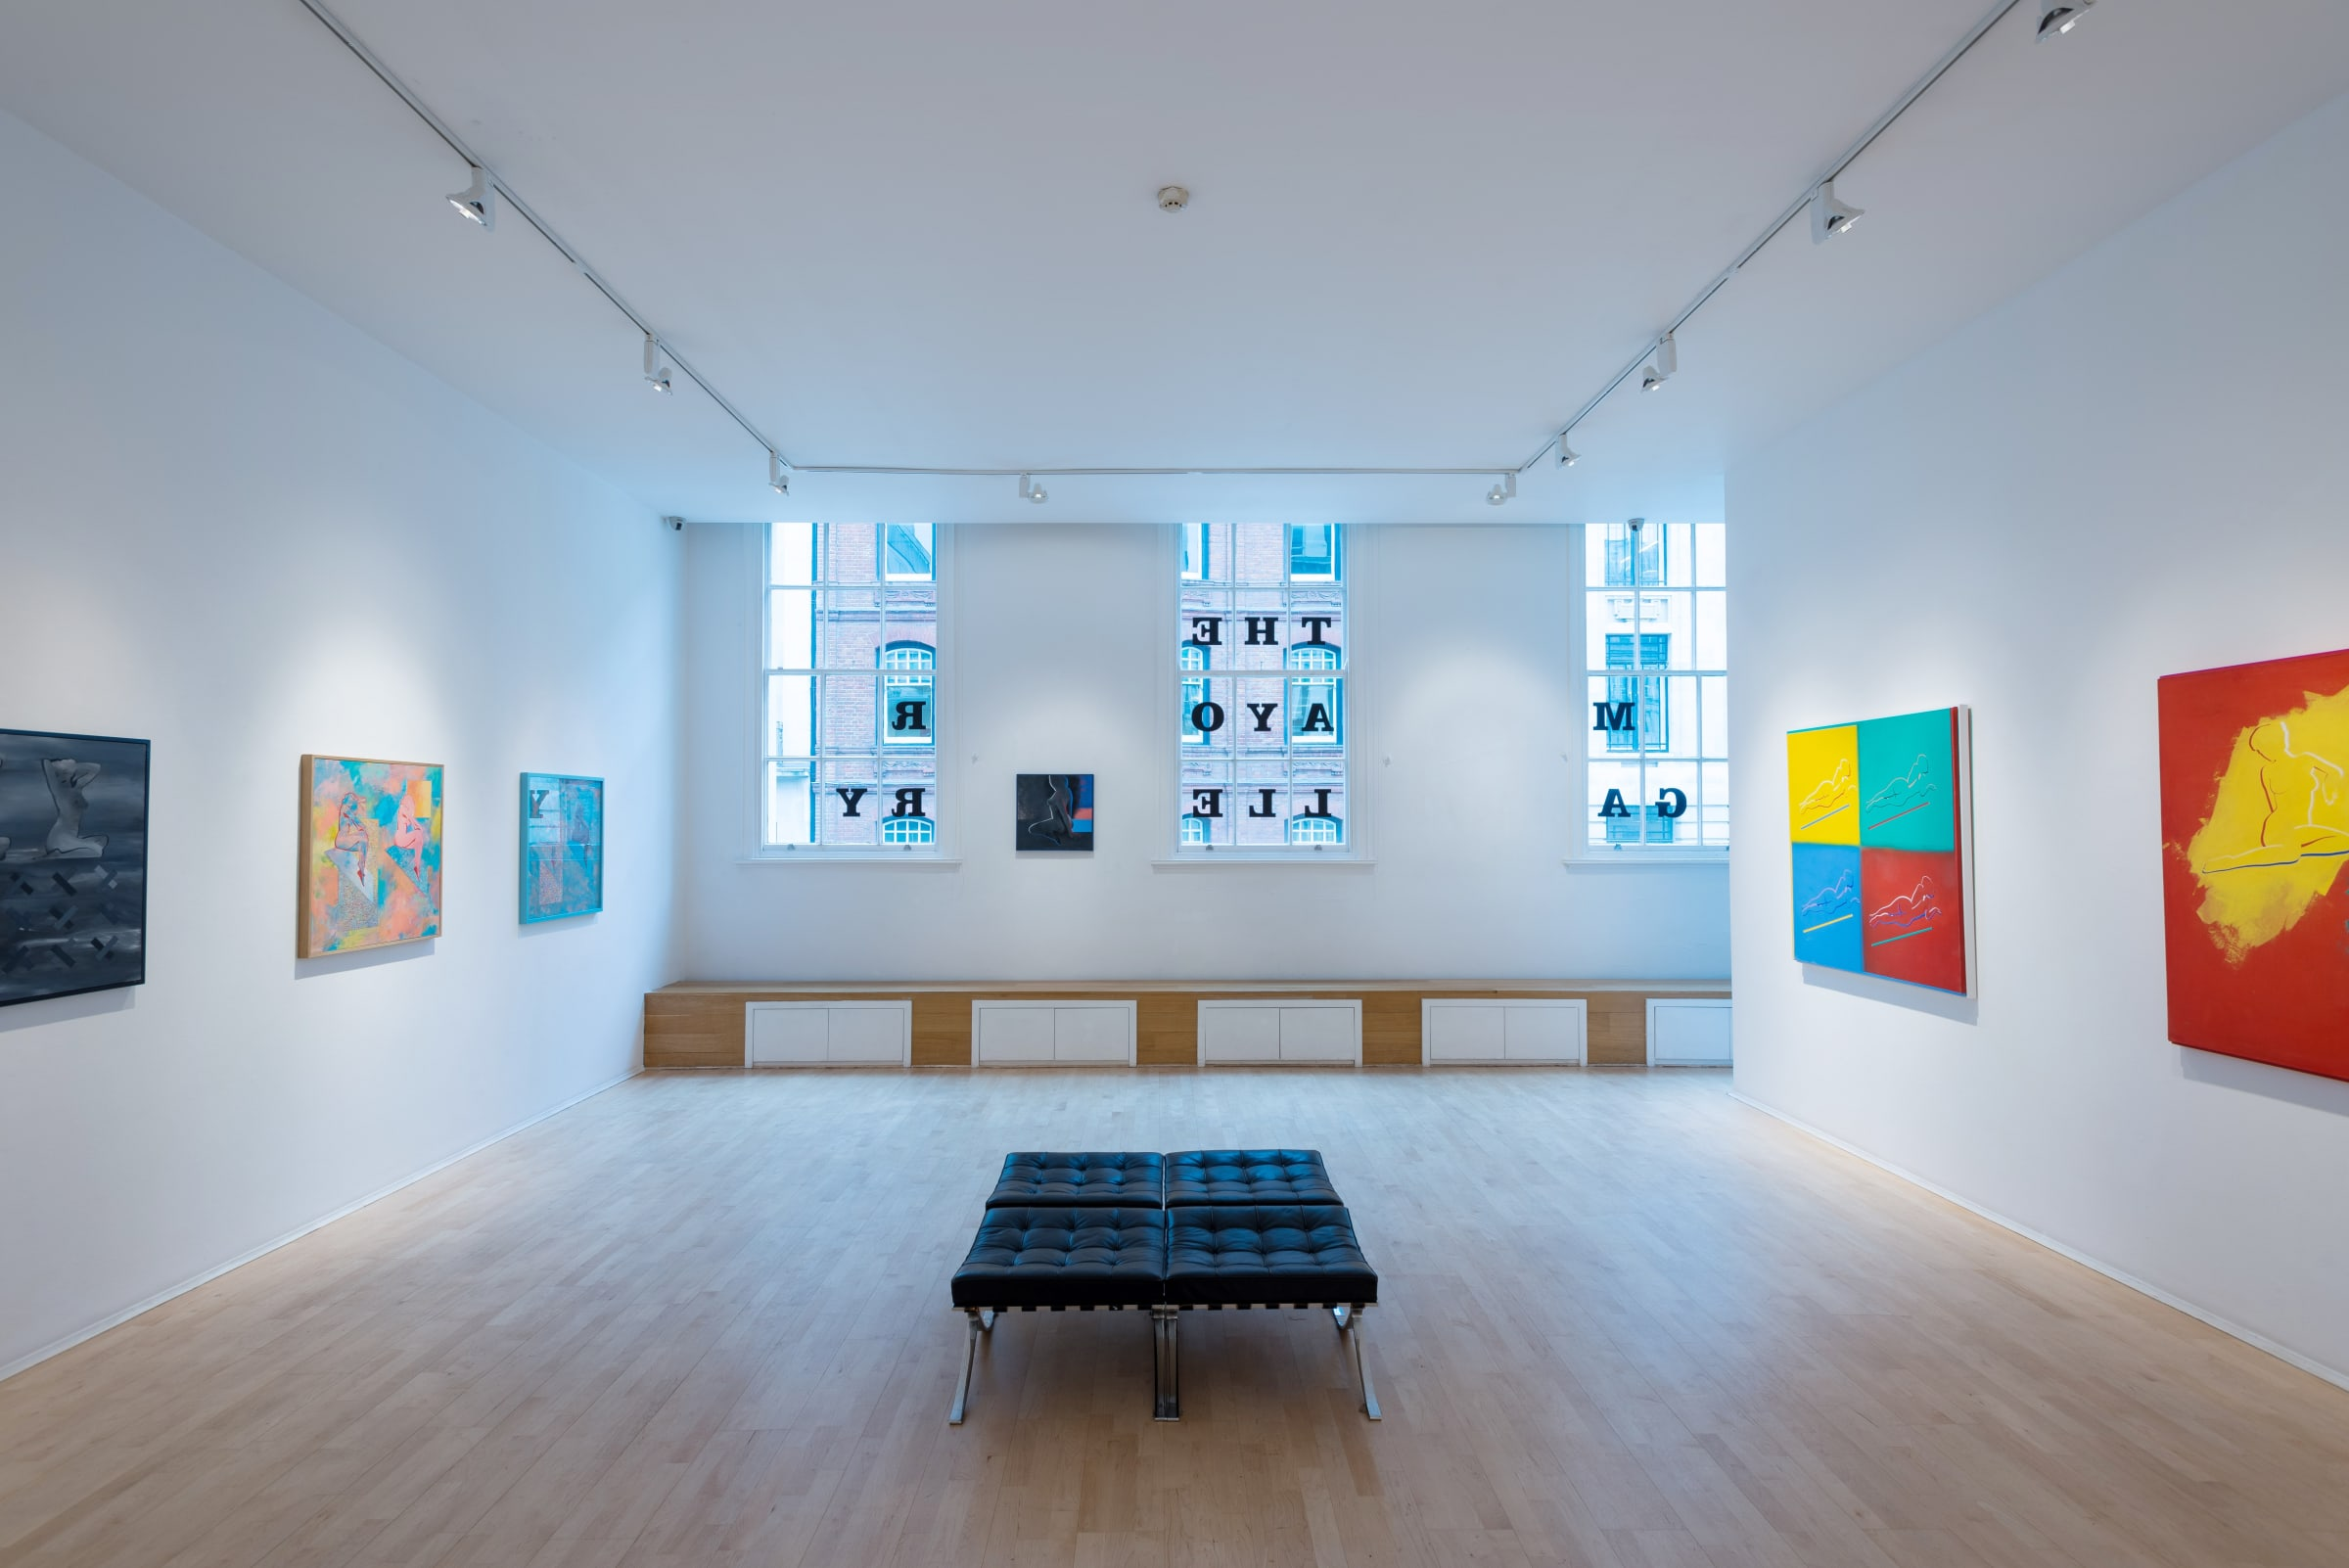 """<span class=""""link fancybox-details-link""""><a href=""""/exhibitions/318/works/image_standalone1624/"""">View Detail Page</a></span><p><strong>ANTONY DONALDSON</strong>   OF MEMORY OF OBLIVION   09 SEP - 09 OCT 2015   Installation view</p>"""